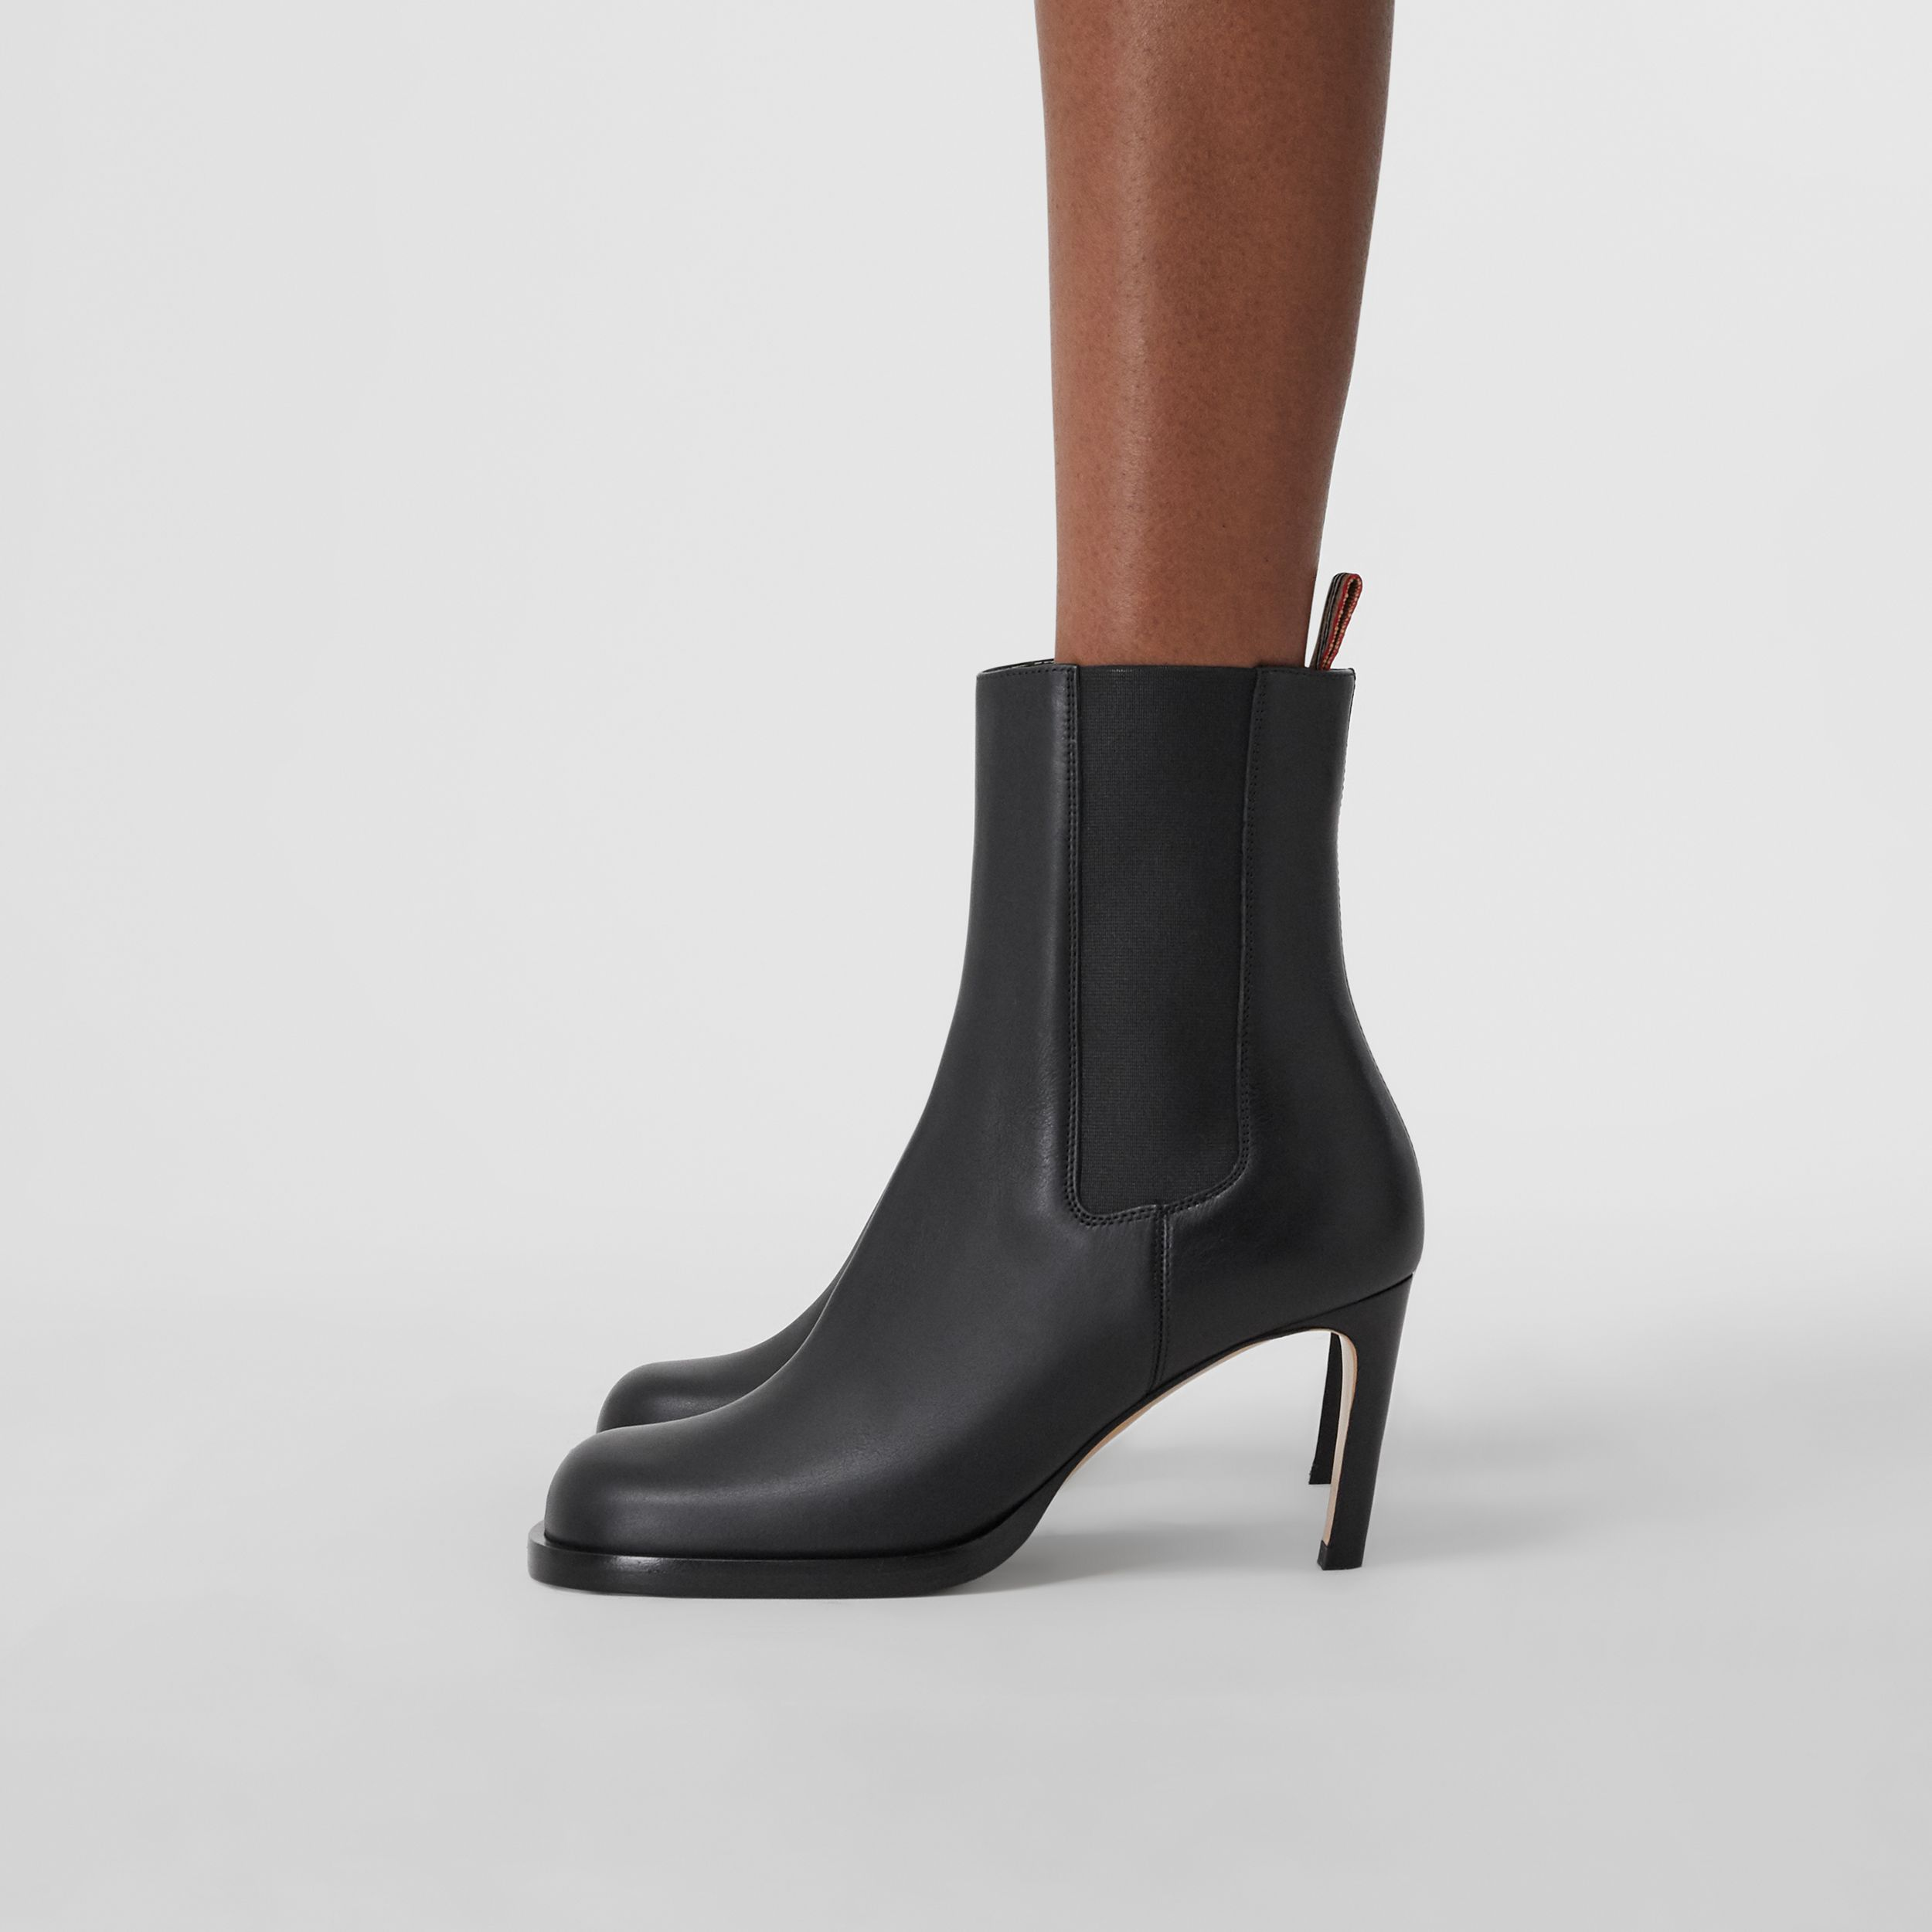 Icon Stripe Detail Leather Ankle Boots in Black - Women | Burberry - 3